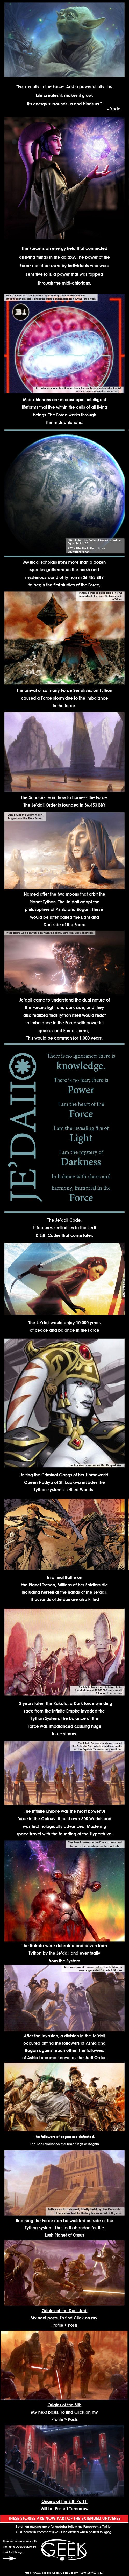 Must admit I've always been wary about that midichlorian fact #Jedi #origins